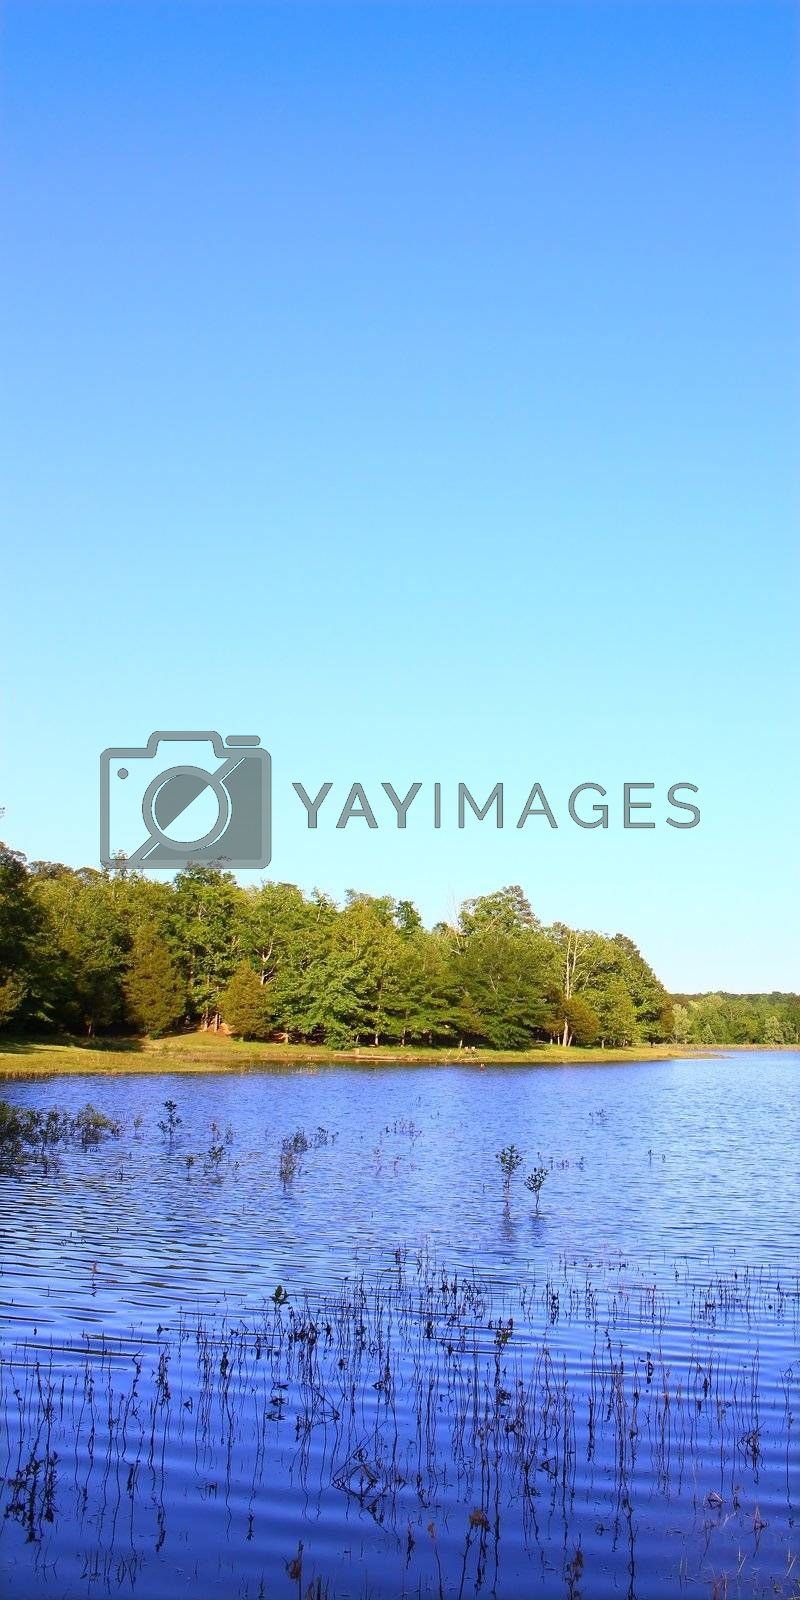 Royalty free image of Tishomingo State Park - Mississippi by Wirepec